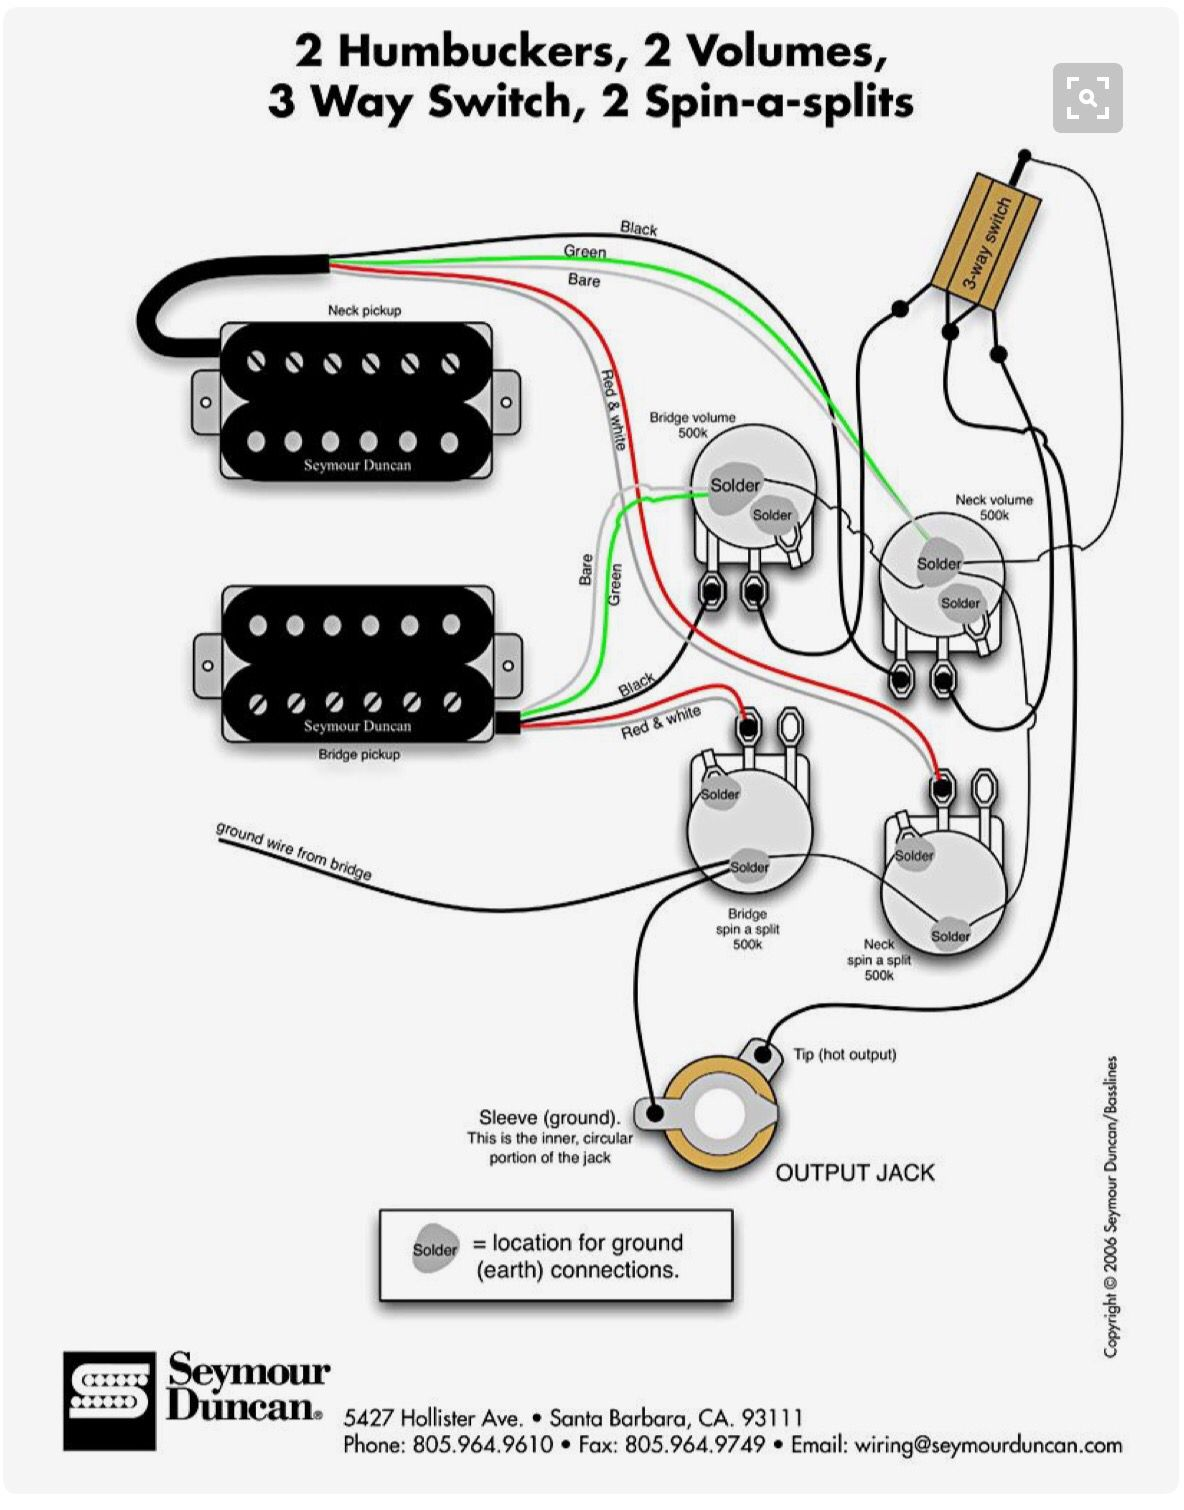 2 Humbuckers, 2 Volumes, 3WY Switch, 2 SpinASplits